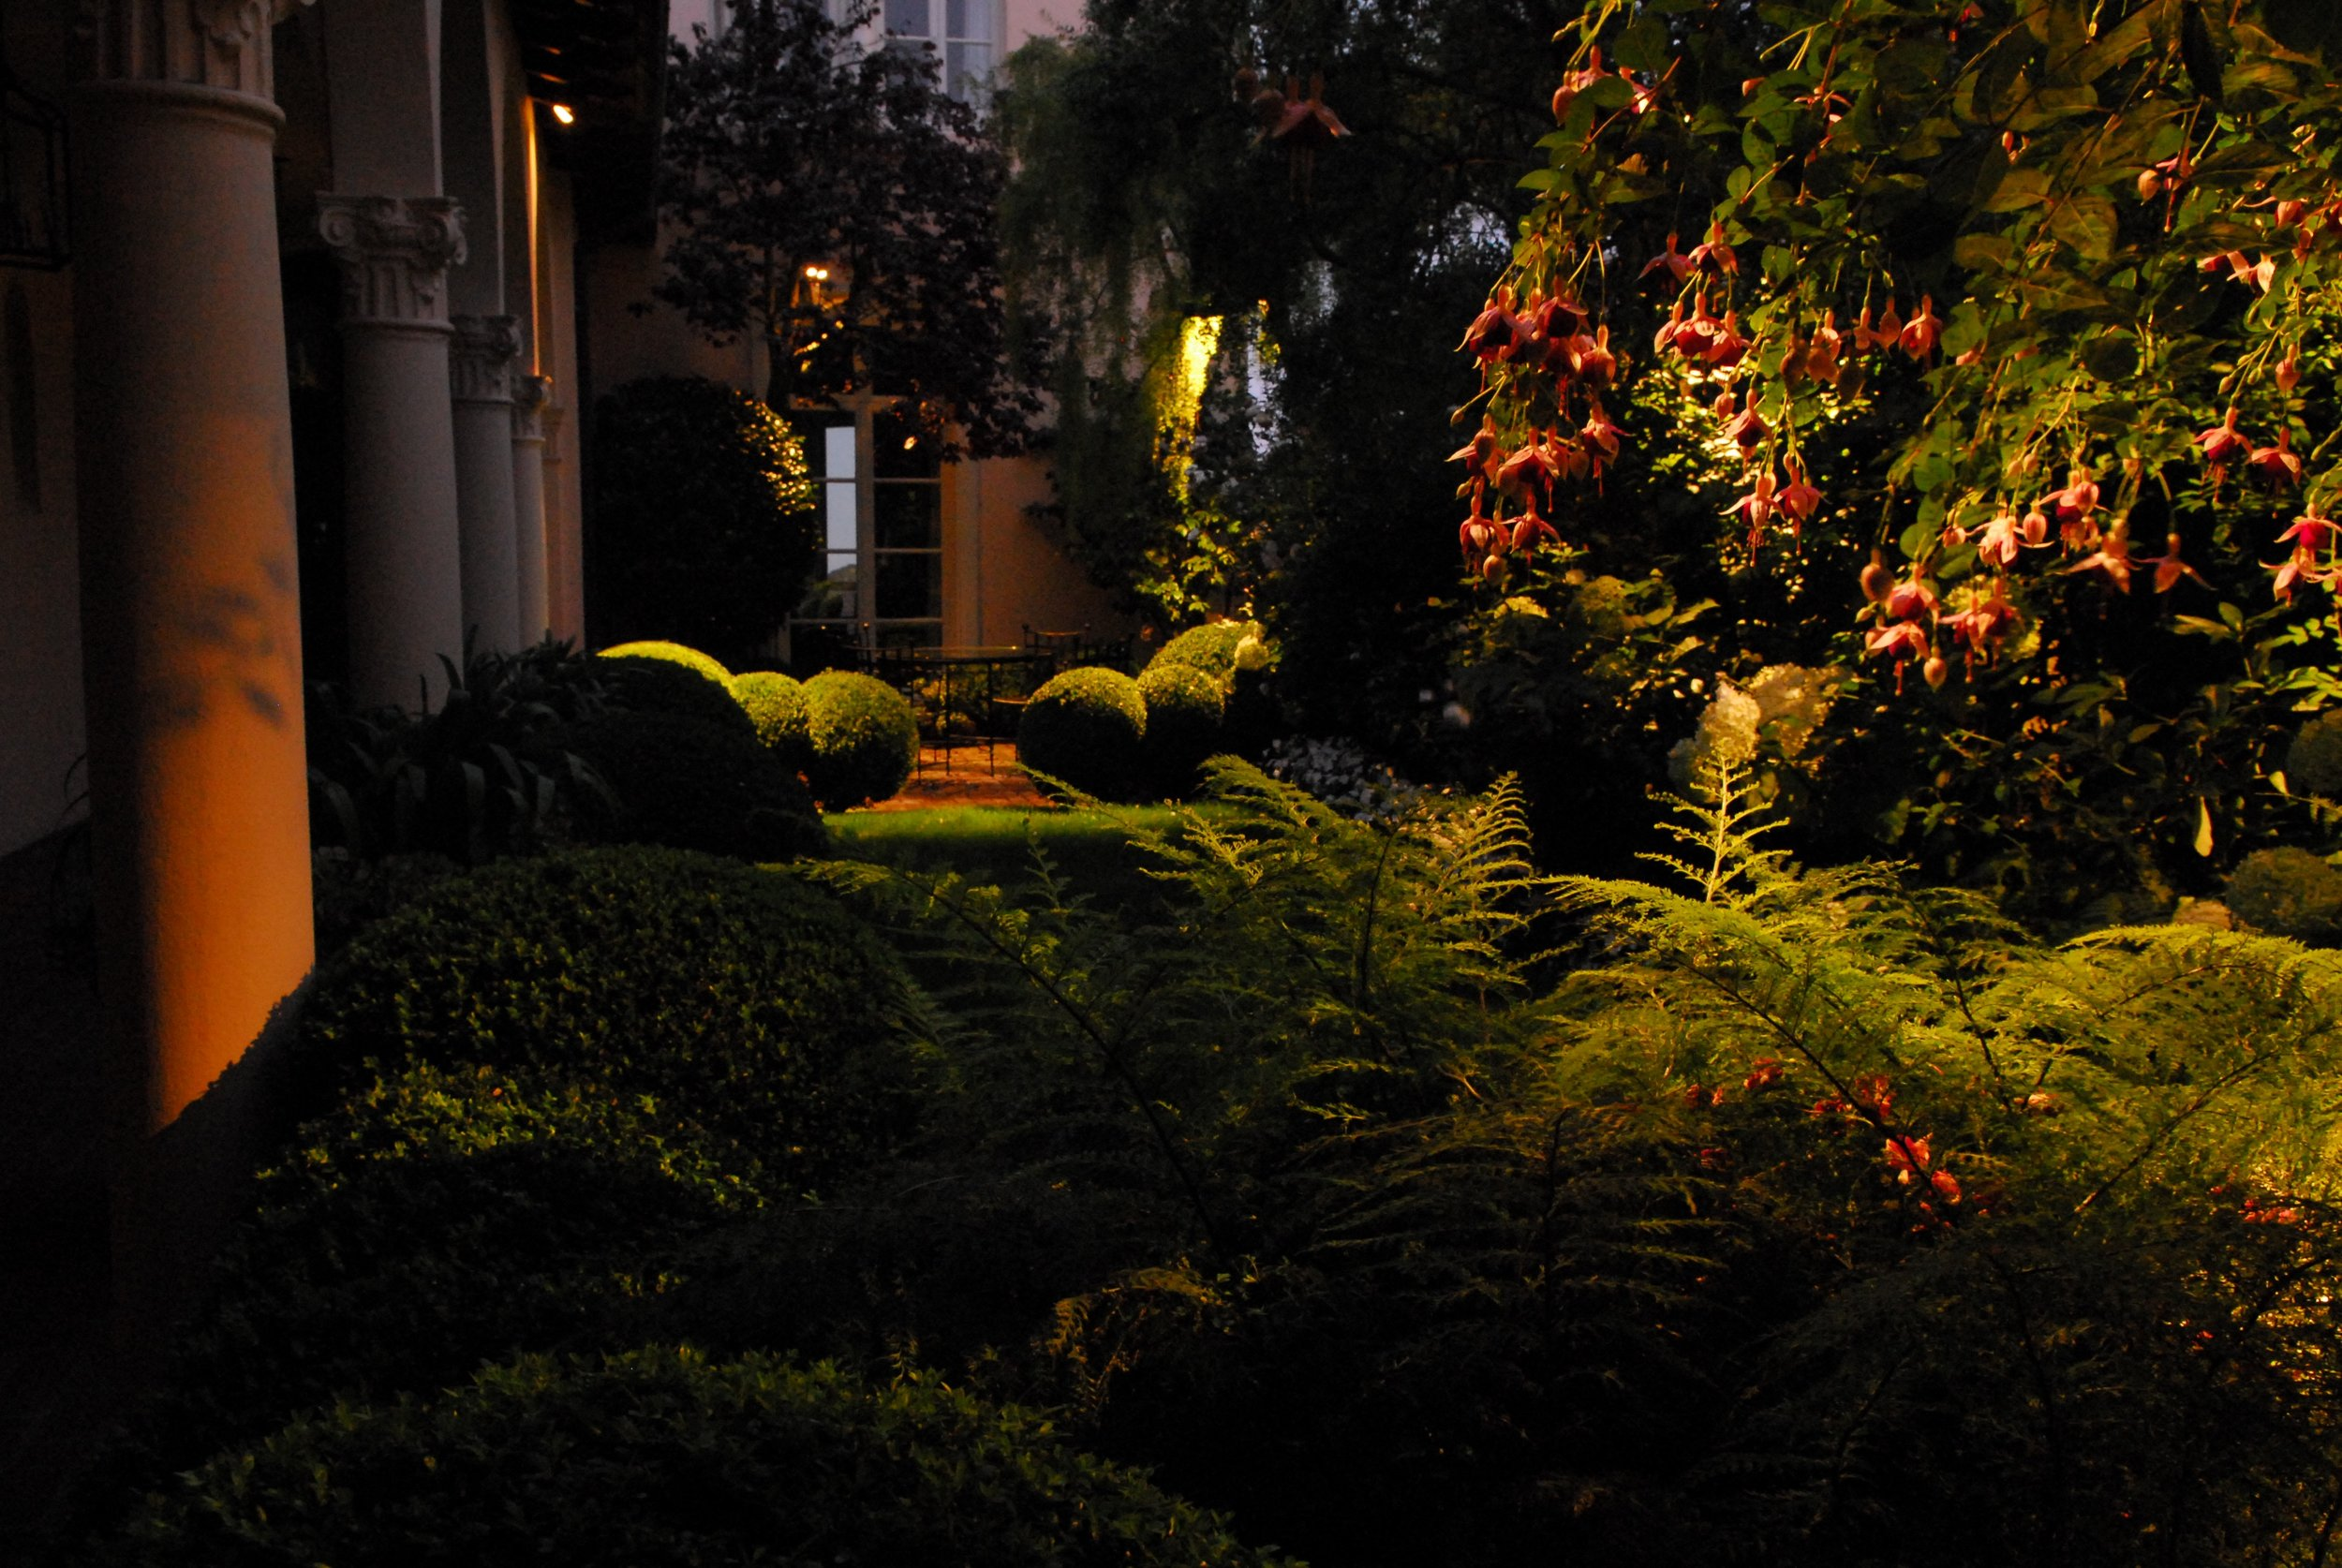 Pacific Heights Evening Photography: Curtis E. Dennison